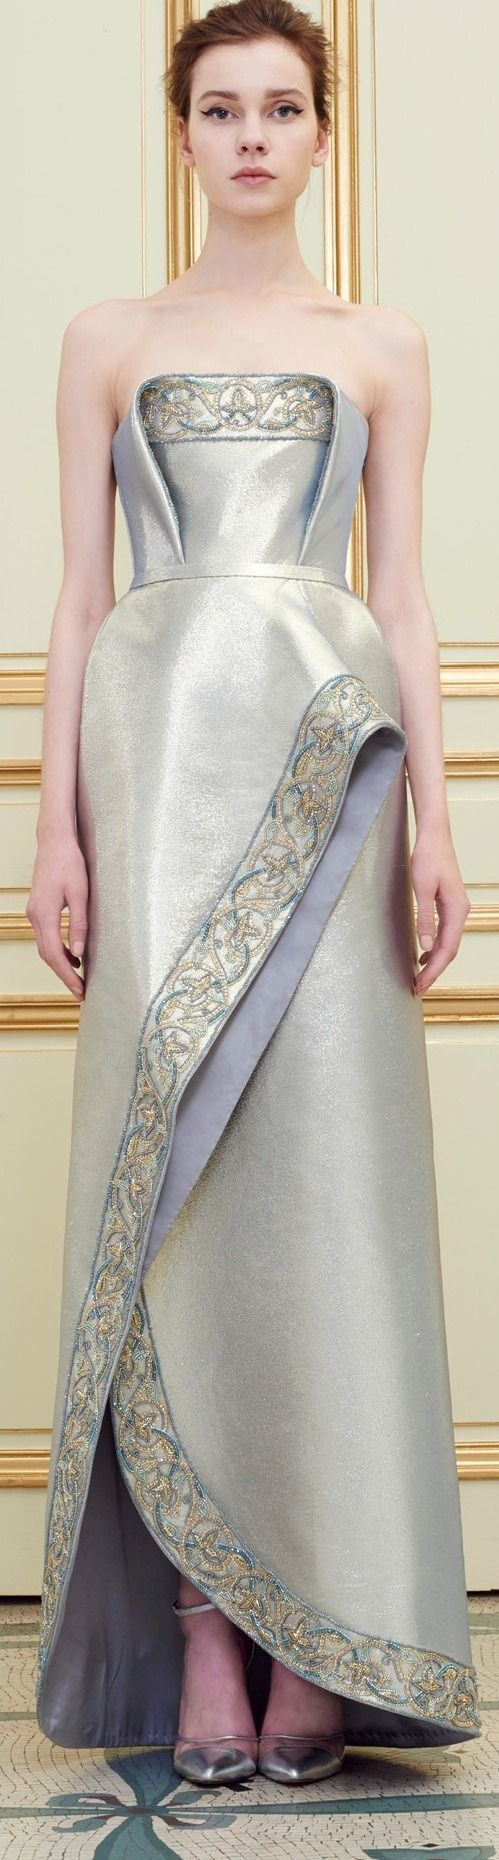 rami-al-ali-spring-2016-haute-couture-collection jαɢlαdy